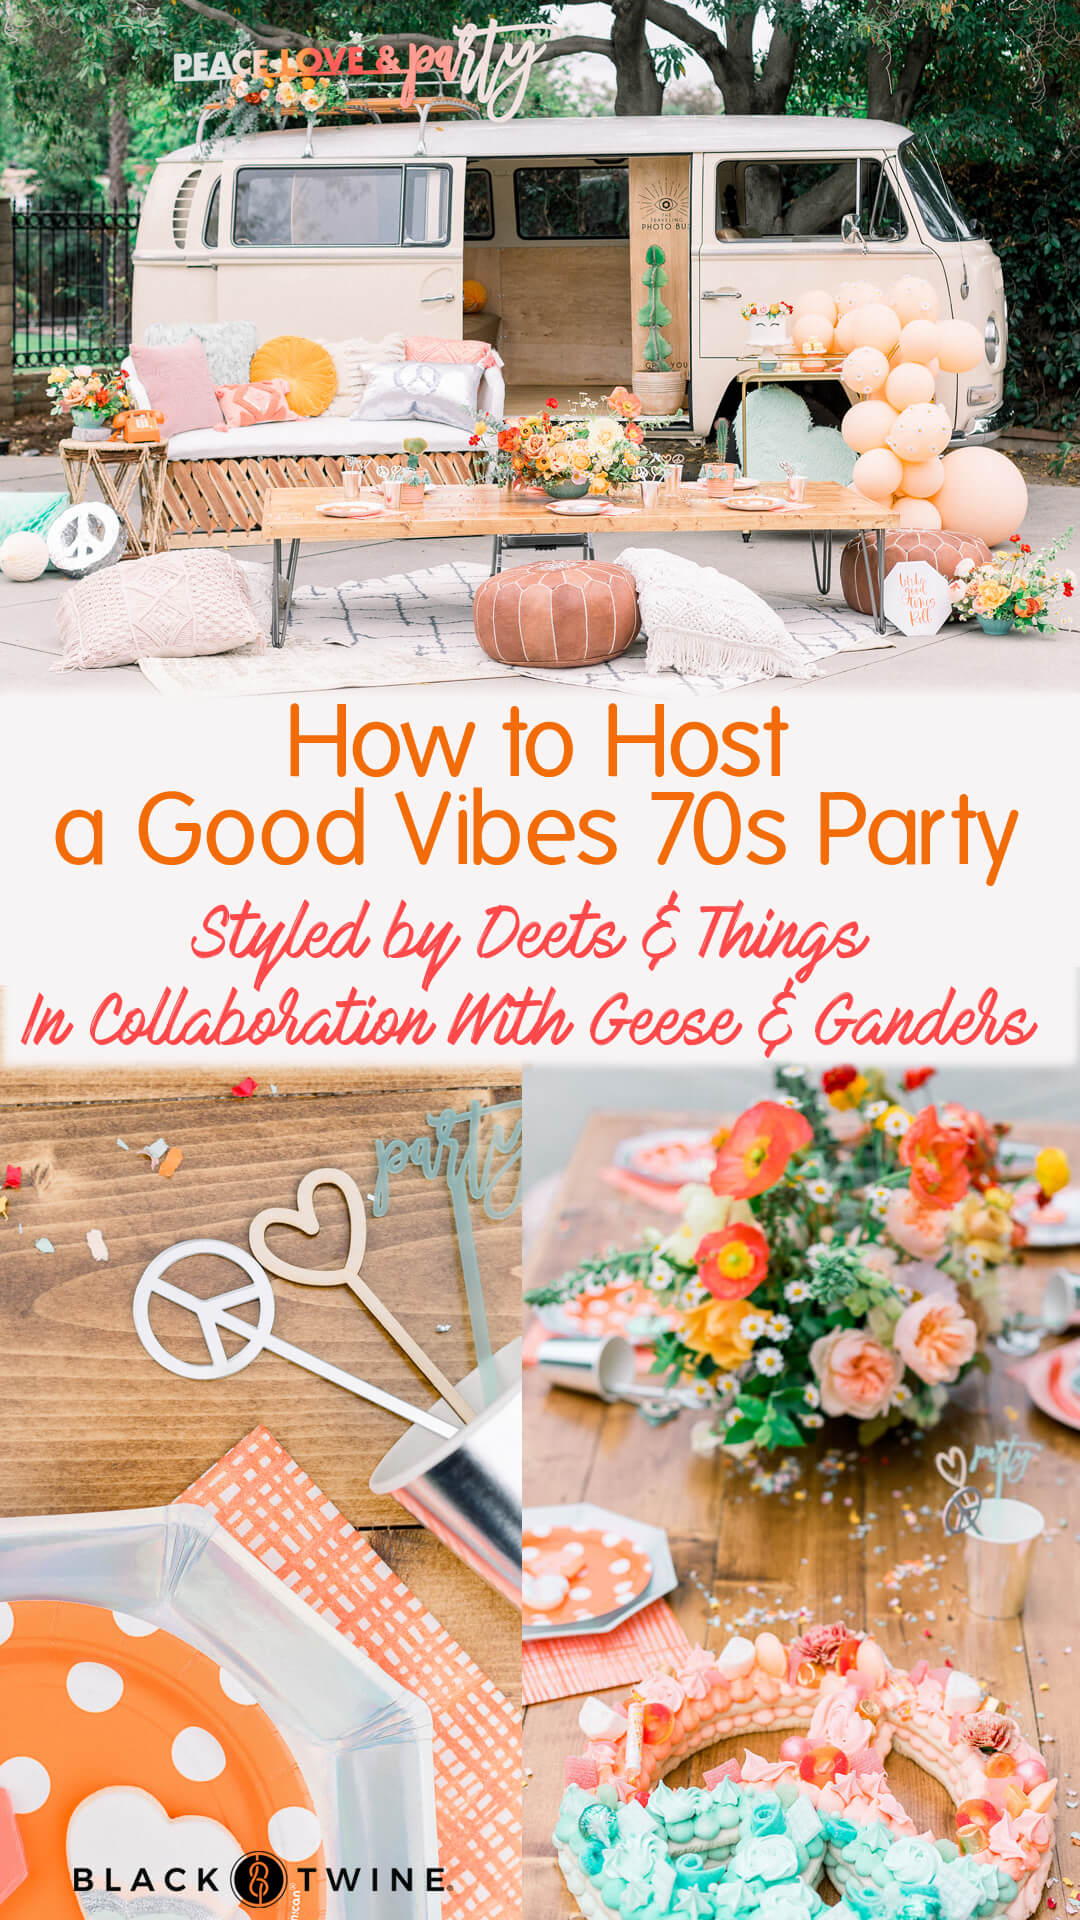 Photo Collage from Peace, Love & Party styled by Deets & Things | Black Twine